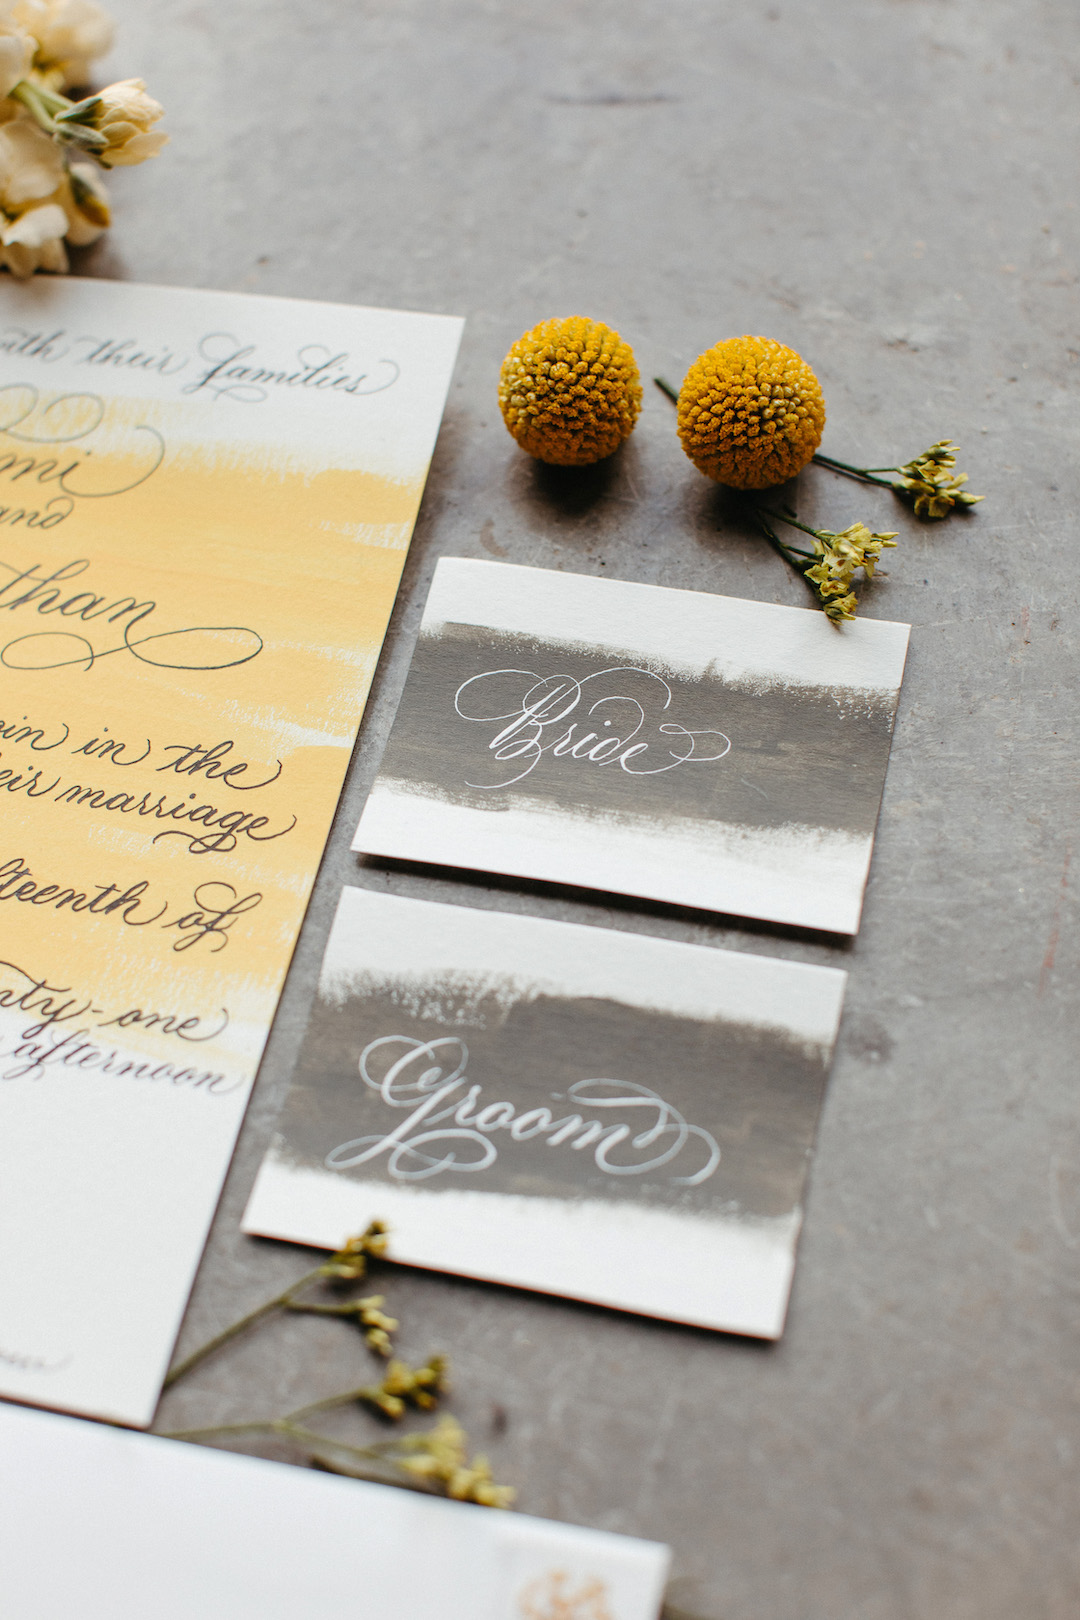 Pantone 2021 colors of the year wedding stationery | Nashville Bride Guide